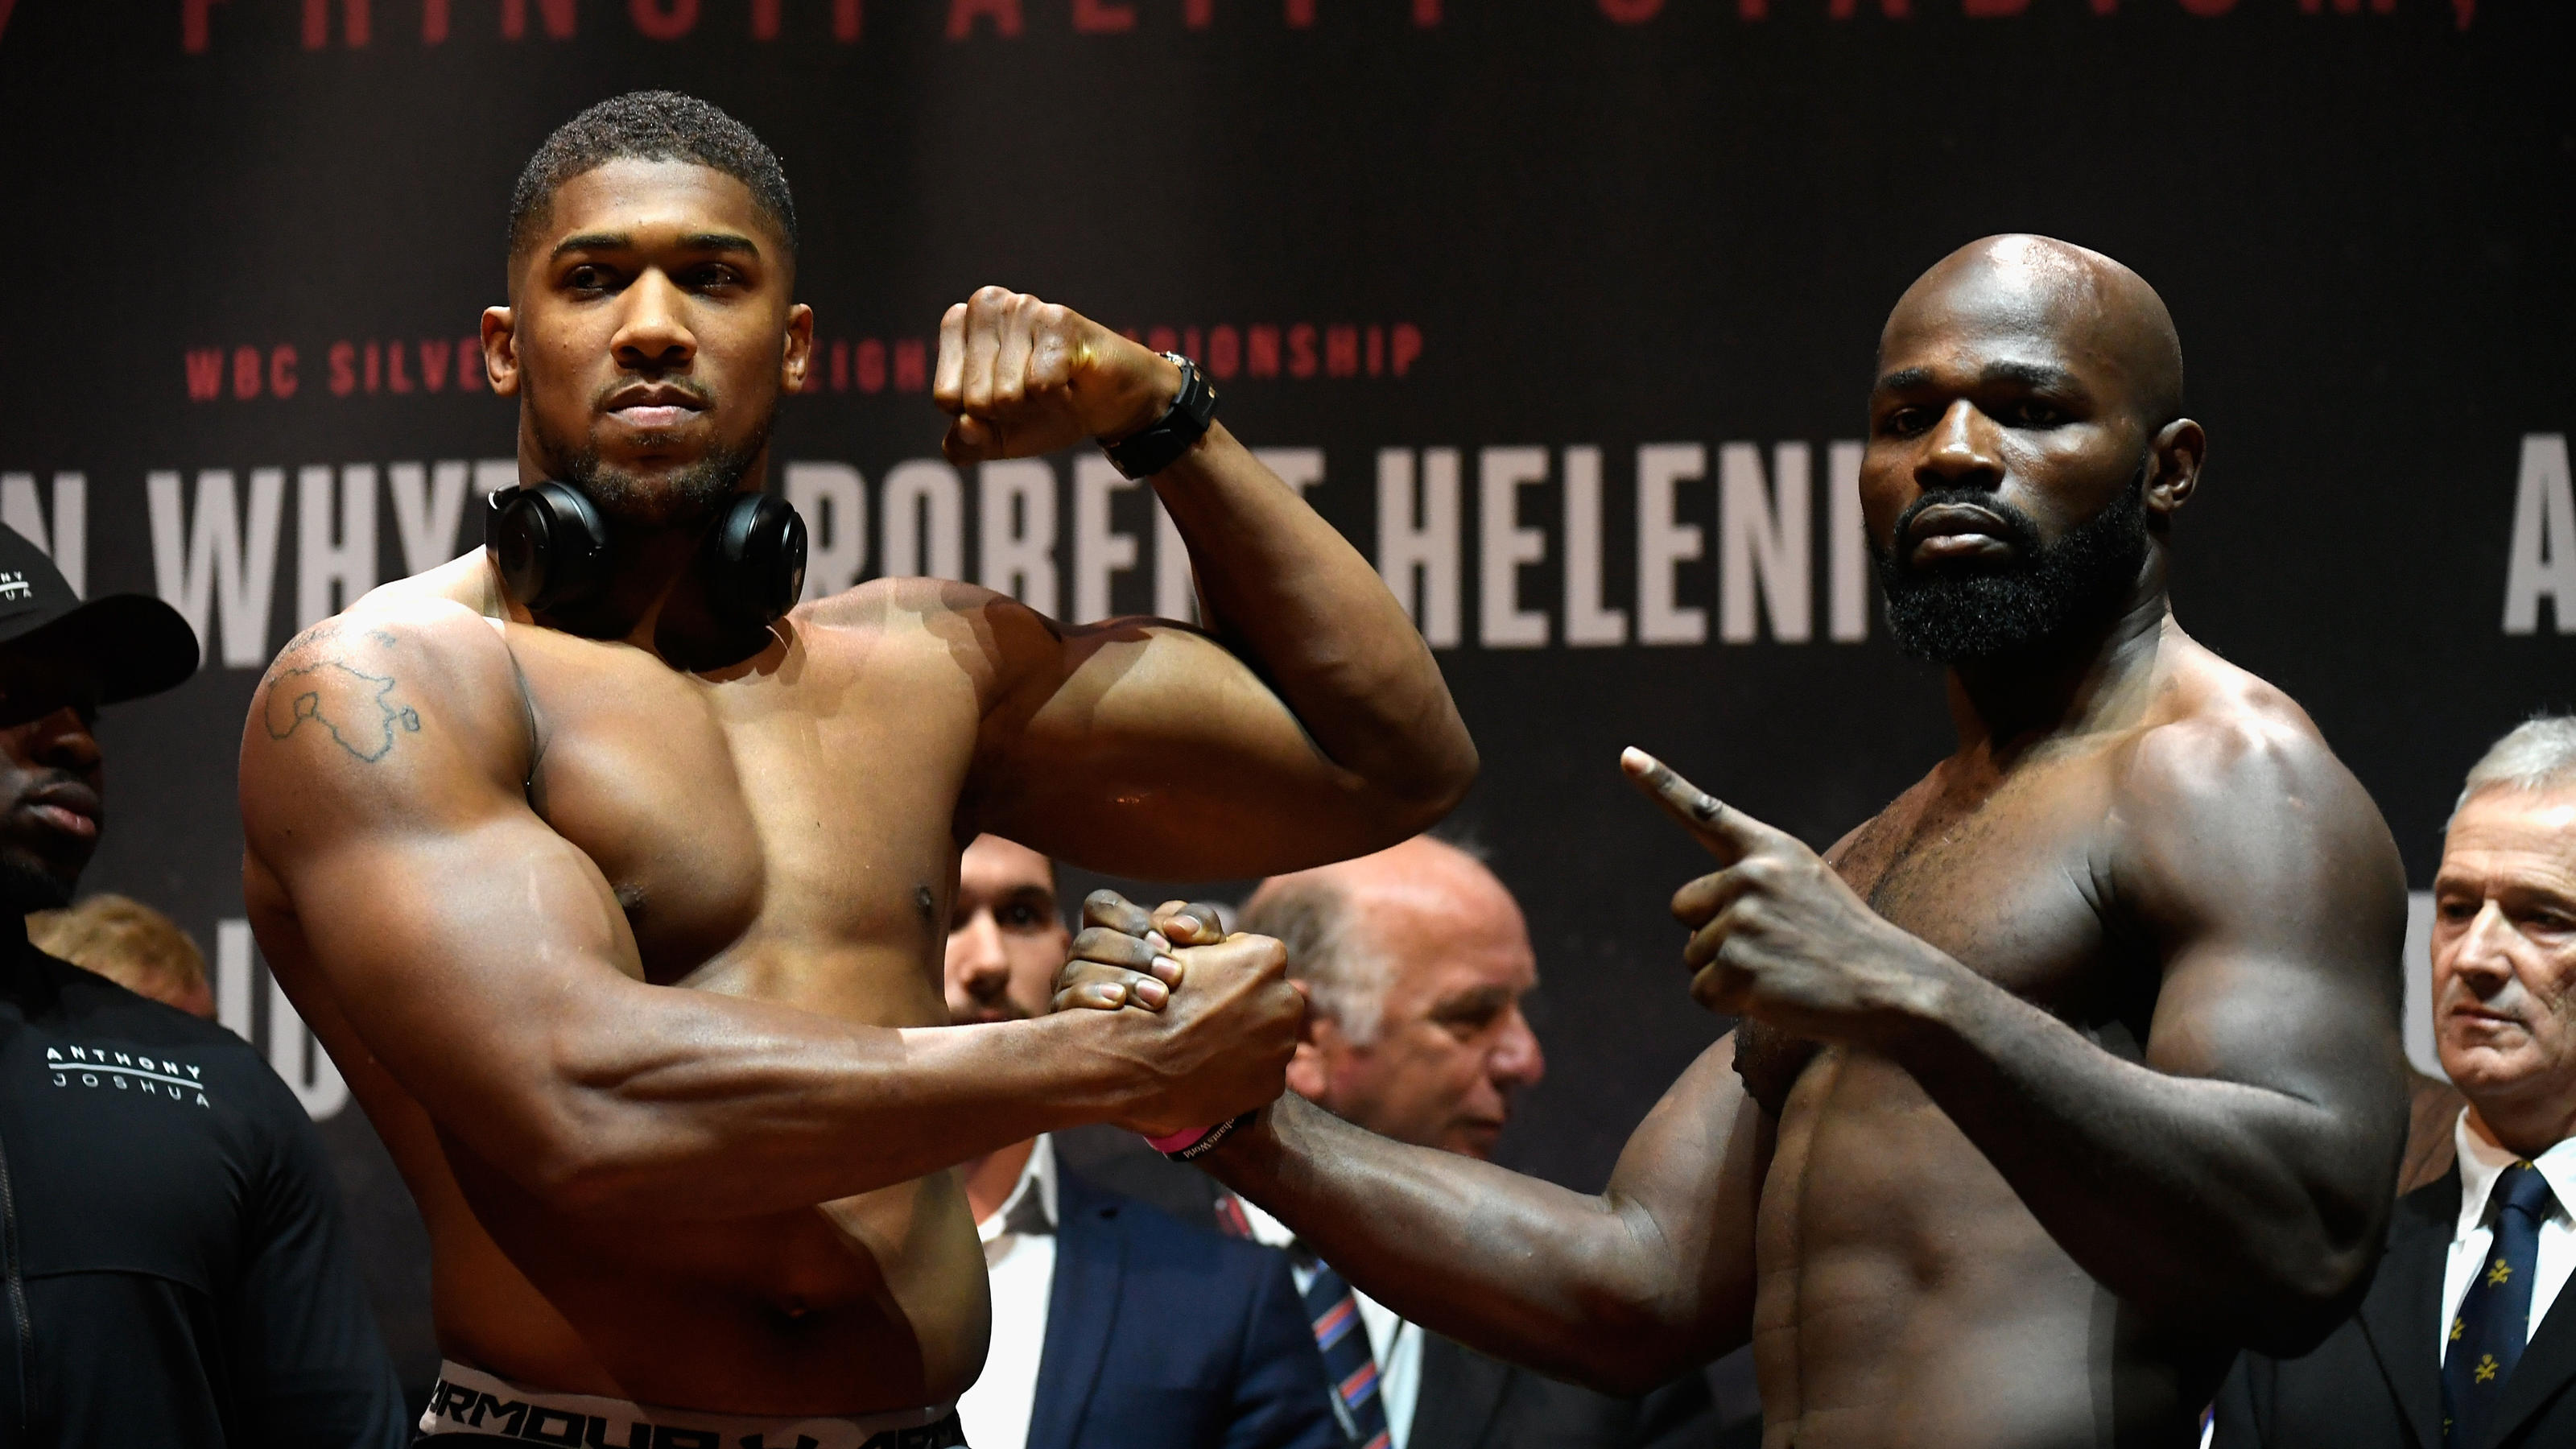 CARDIFF, WALES - OCTOBER 27:  Anthony Joshua of England (L) and Carlos Takam of France (R) pose for photos during a weigh-in prior to tomorrow's world heavyweight title fight between Anthony Joshua and Carlos Takam at Motorpount Arena on October 27,